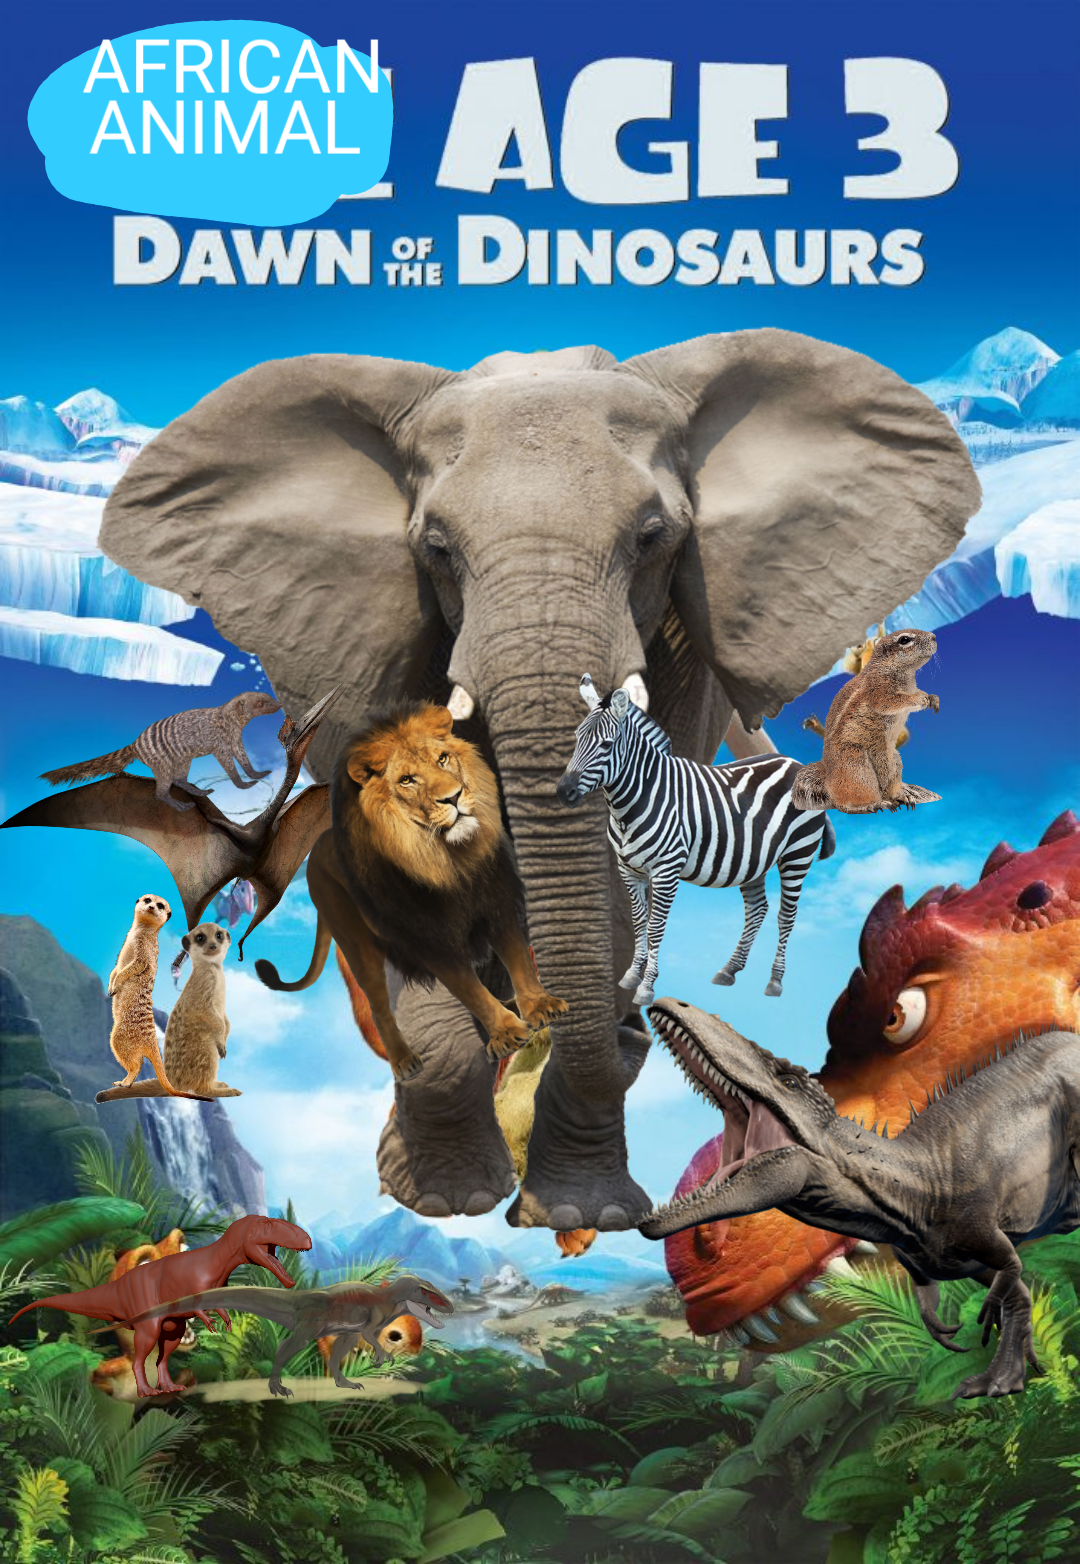 African Animal Age 3: Dawn of the Dinosaurs